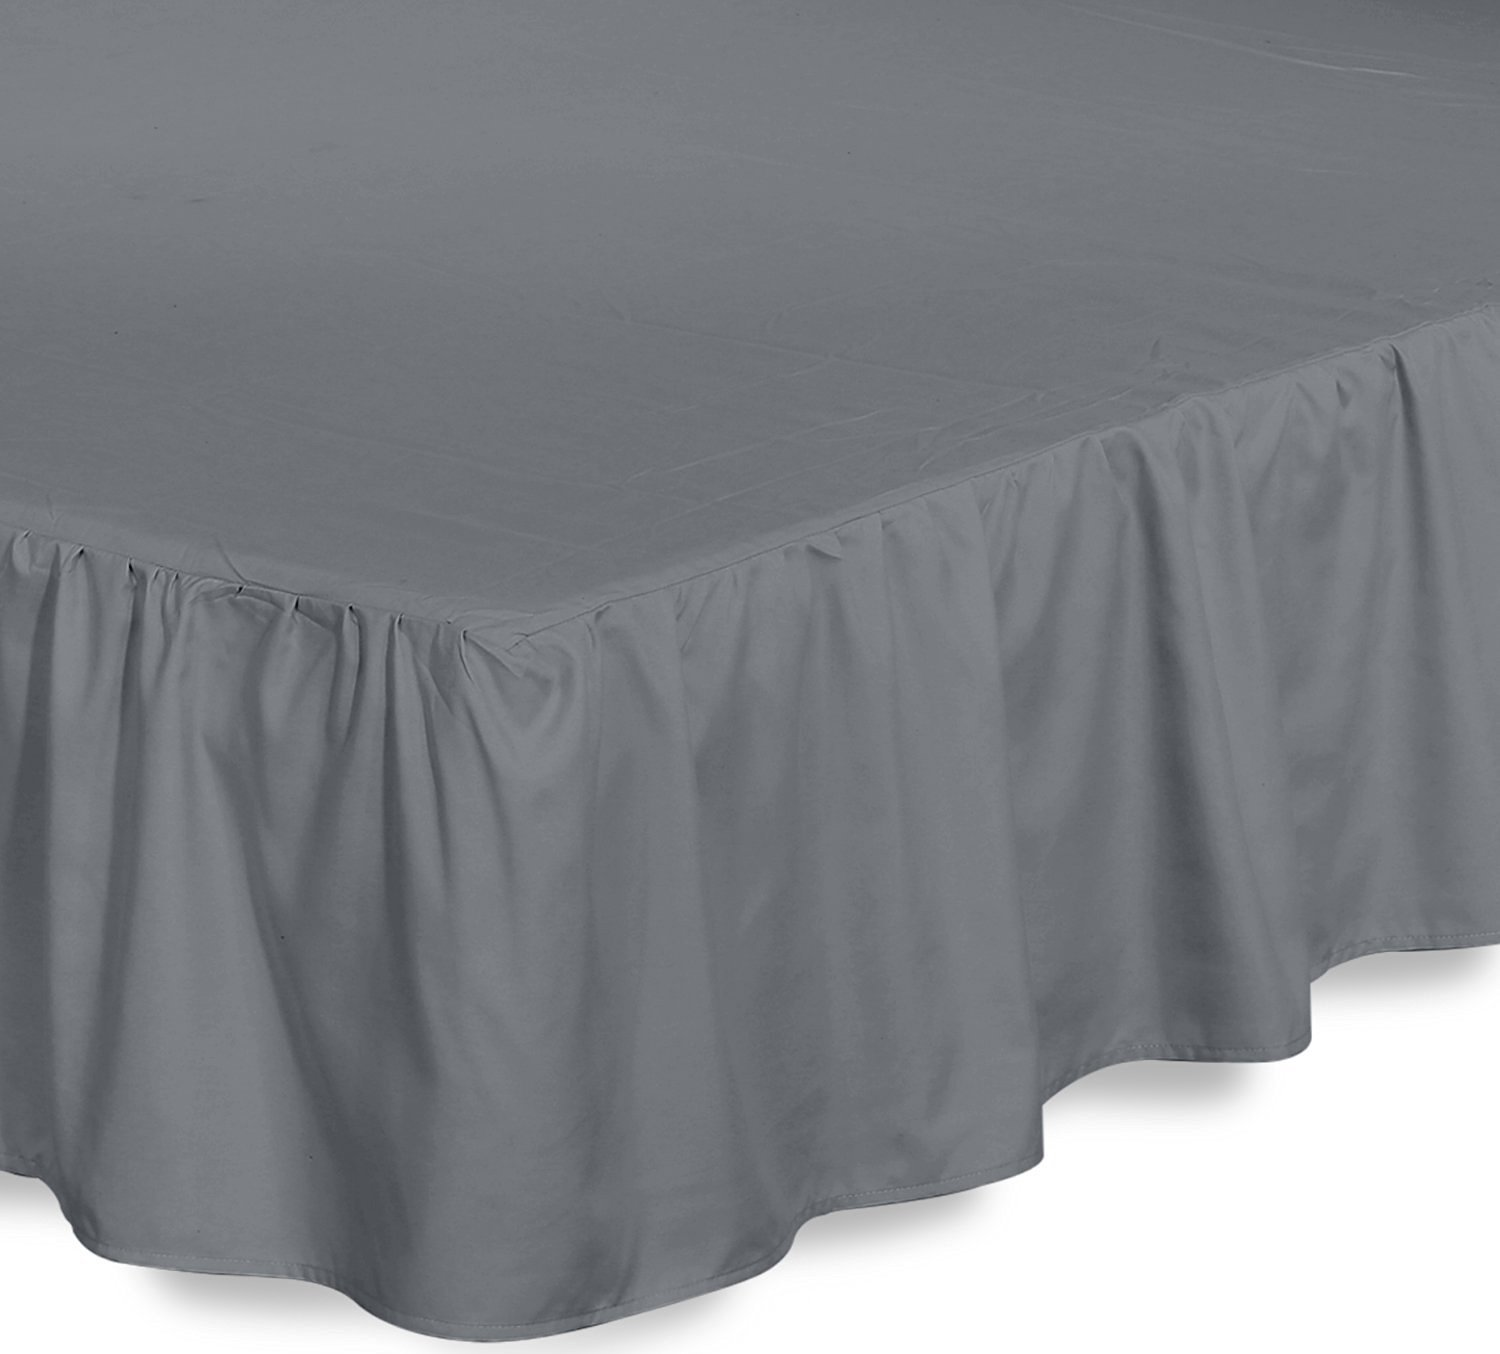 Bed Ruffle Skirt (Queen, Grey) Brushed Microfiber Bed Wrap with Platform